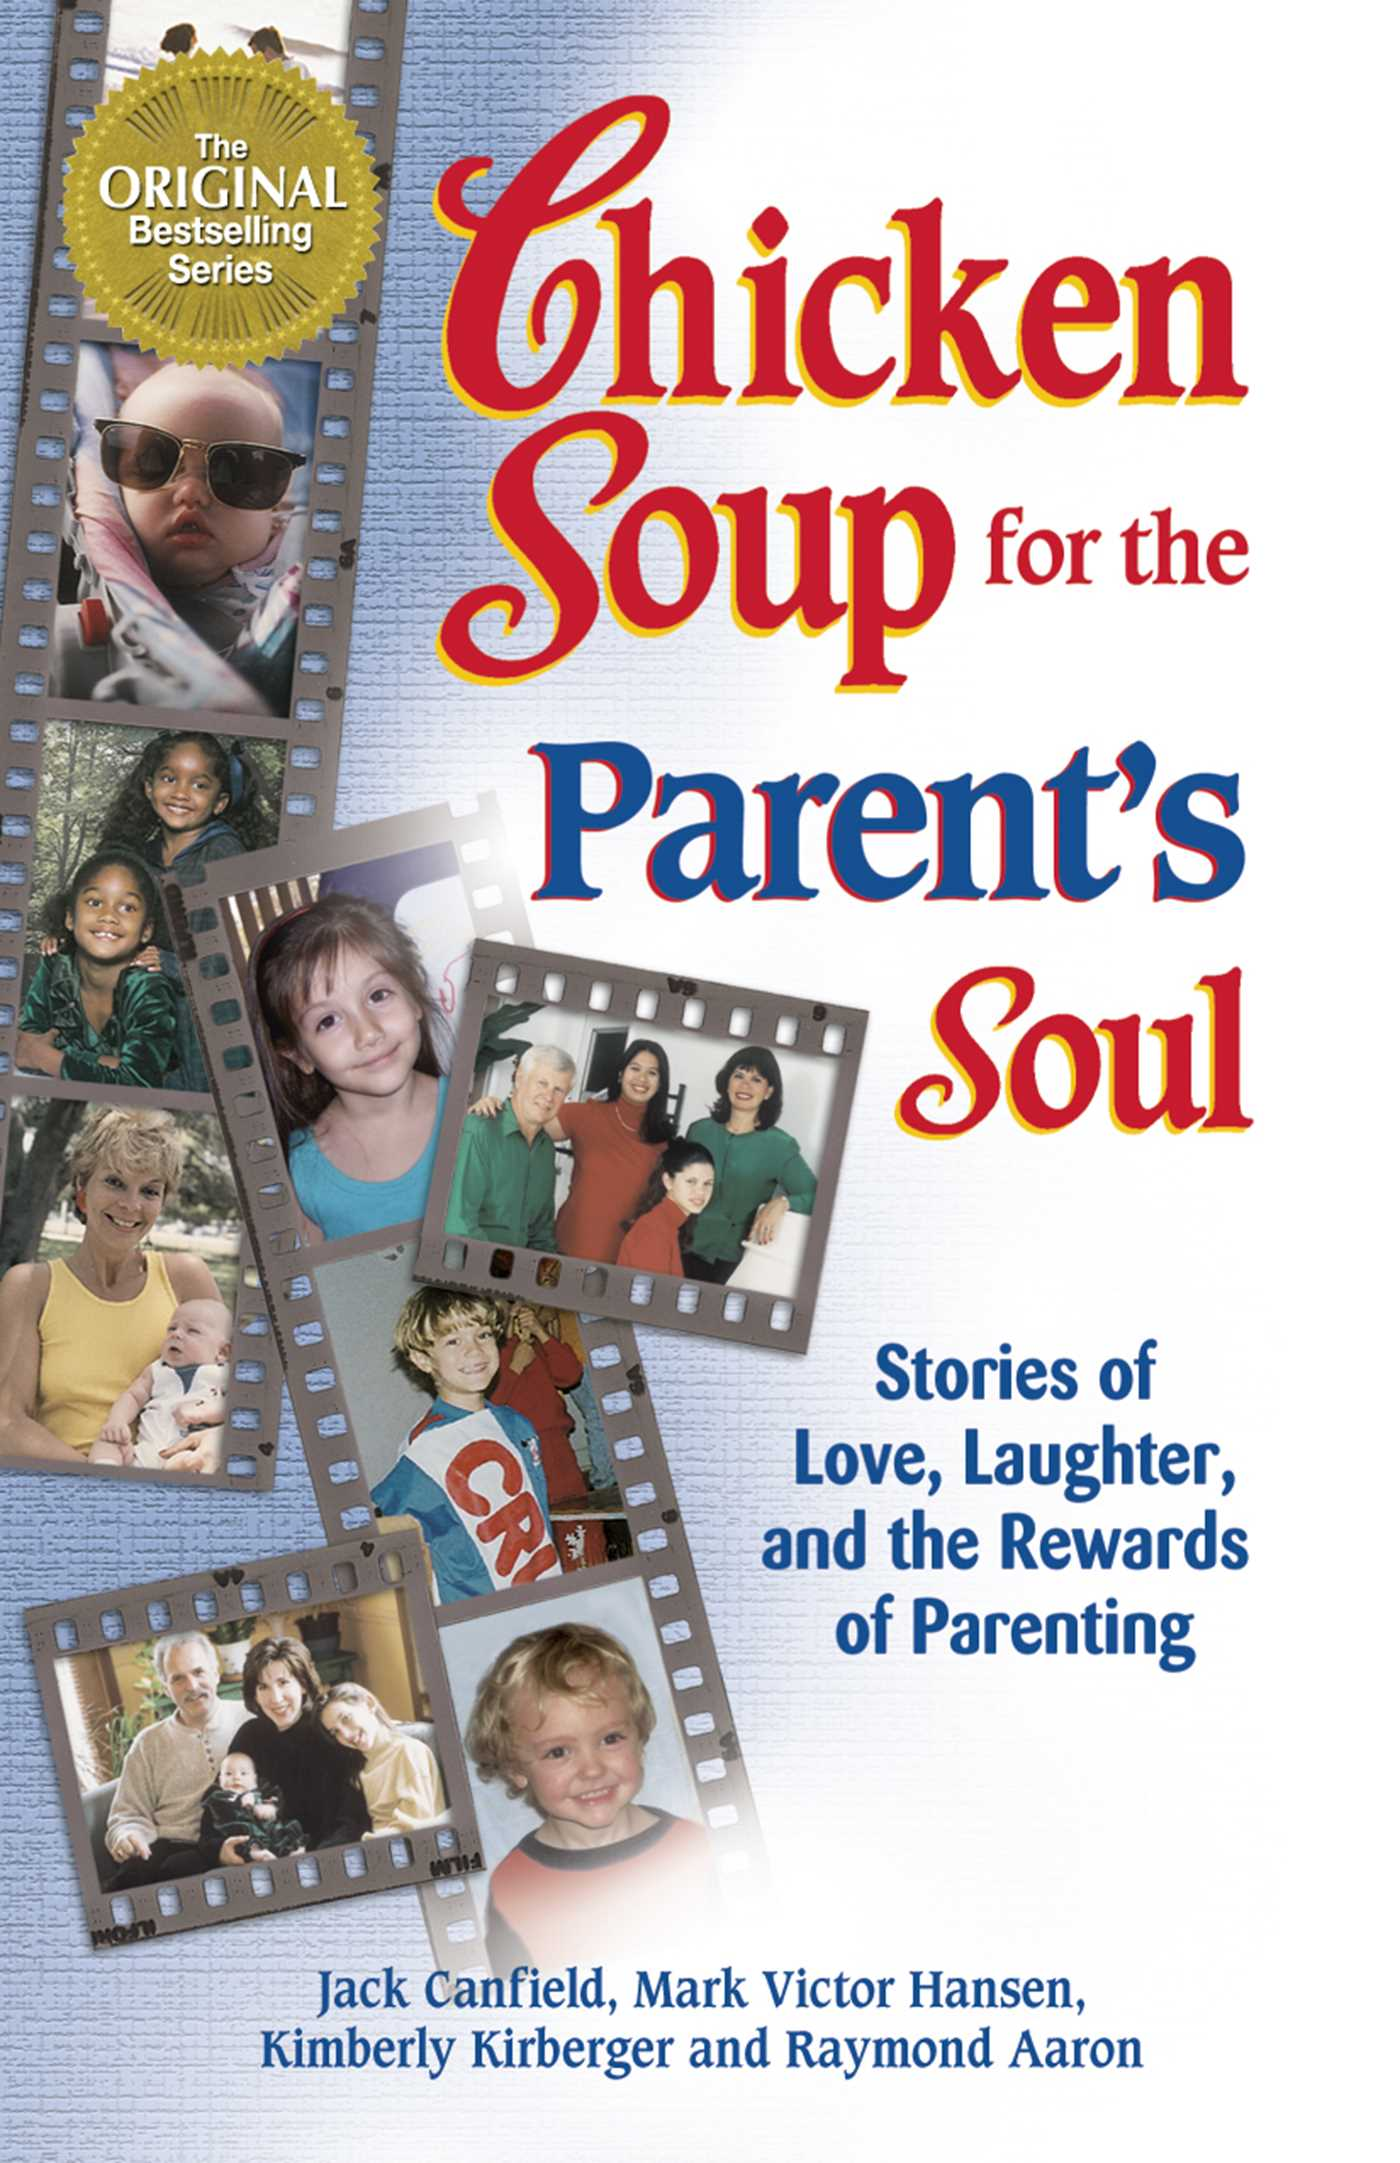 Chicken soup for the parents soul 9781453280324 hr